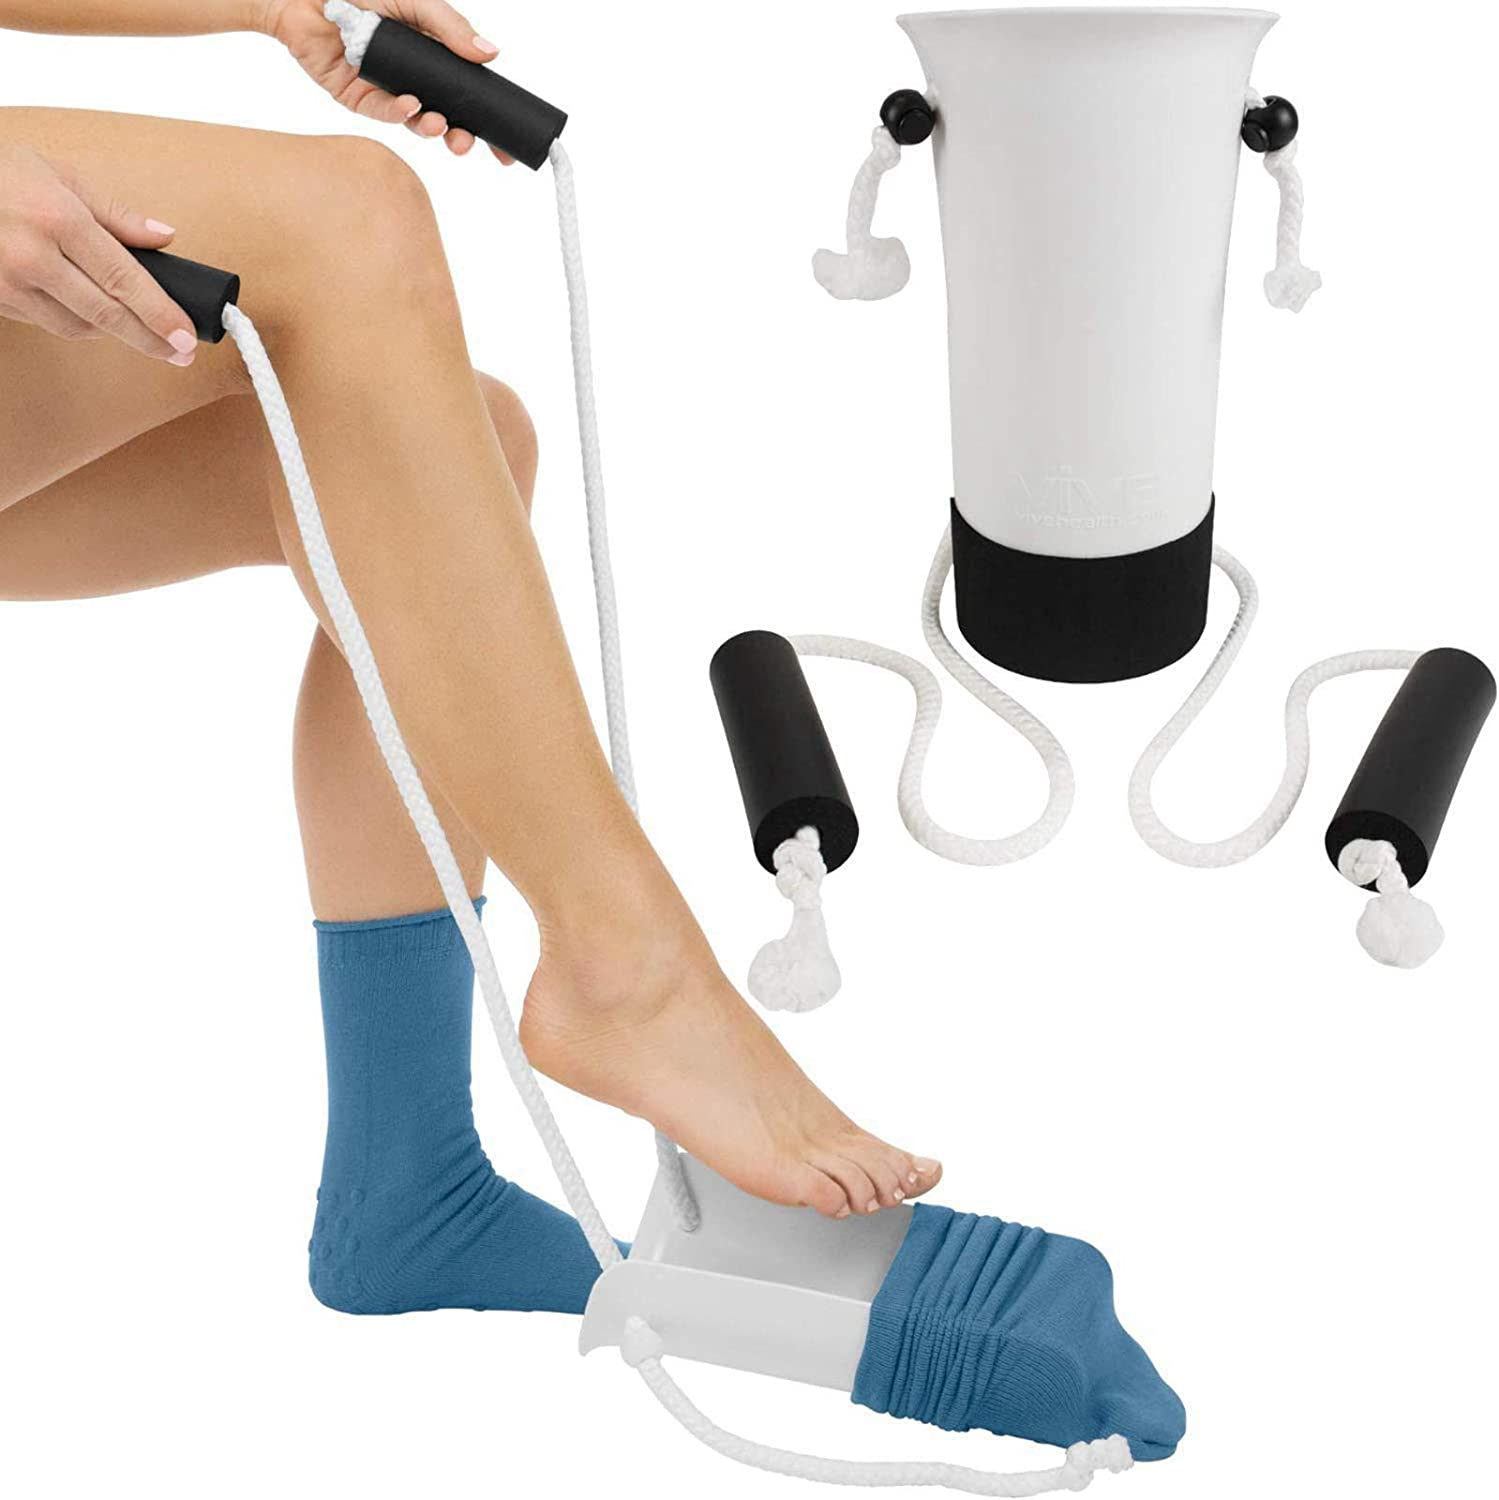 Sock Popular popular Aid - Easy On and Devi Stocking Off Slider Max 69% OFF Assist Pulling